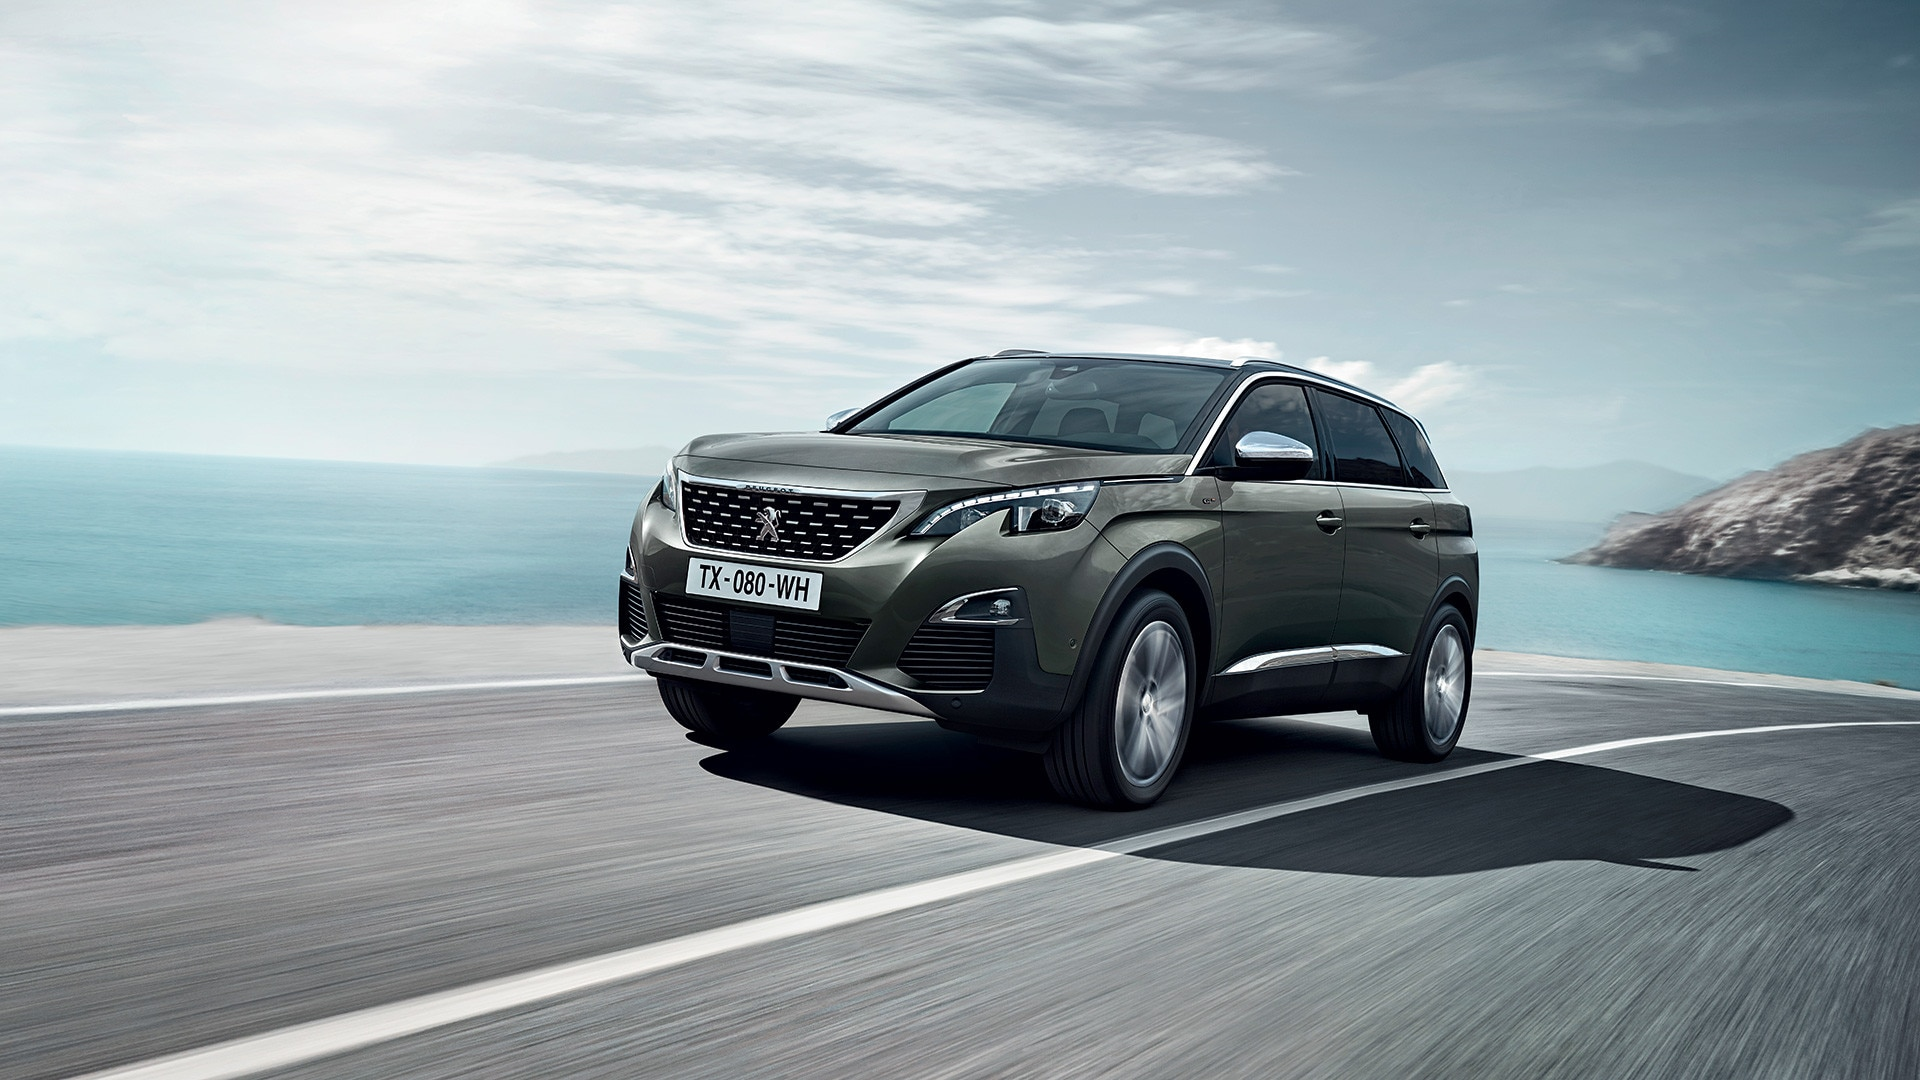 peugeot 5008 suv gt showroom 7 seat suv test drive today. Black Bedroom Furniture Sets. Home Design Ideas